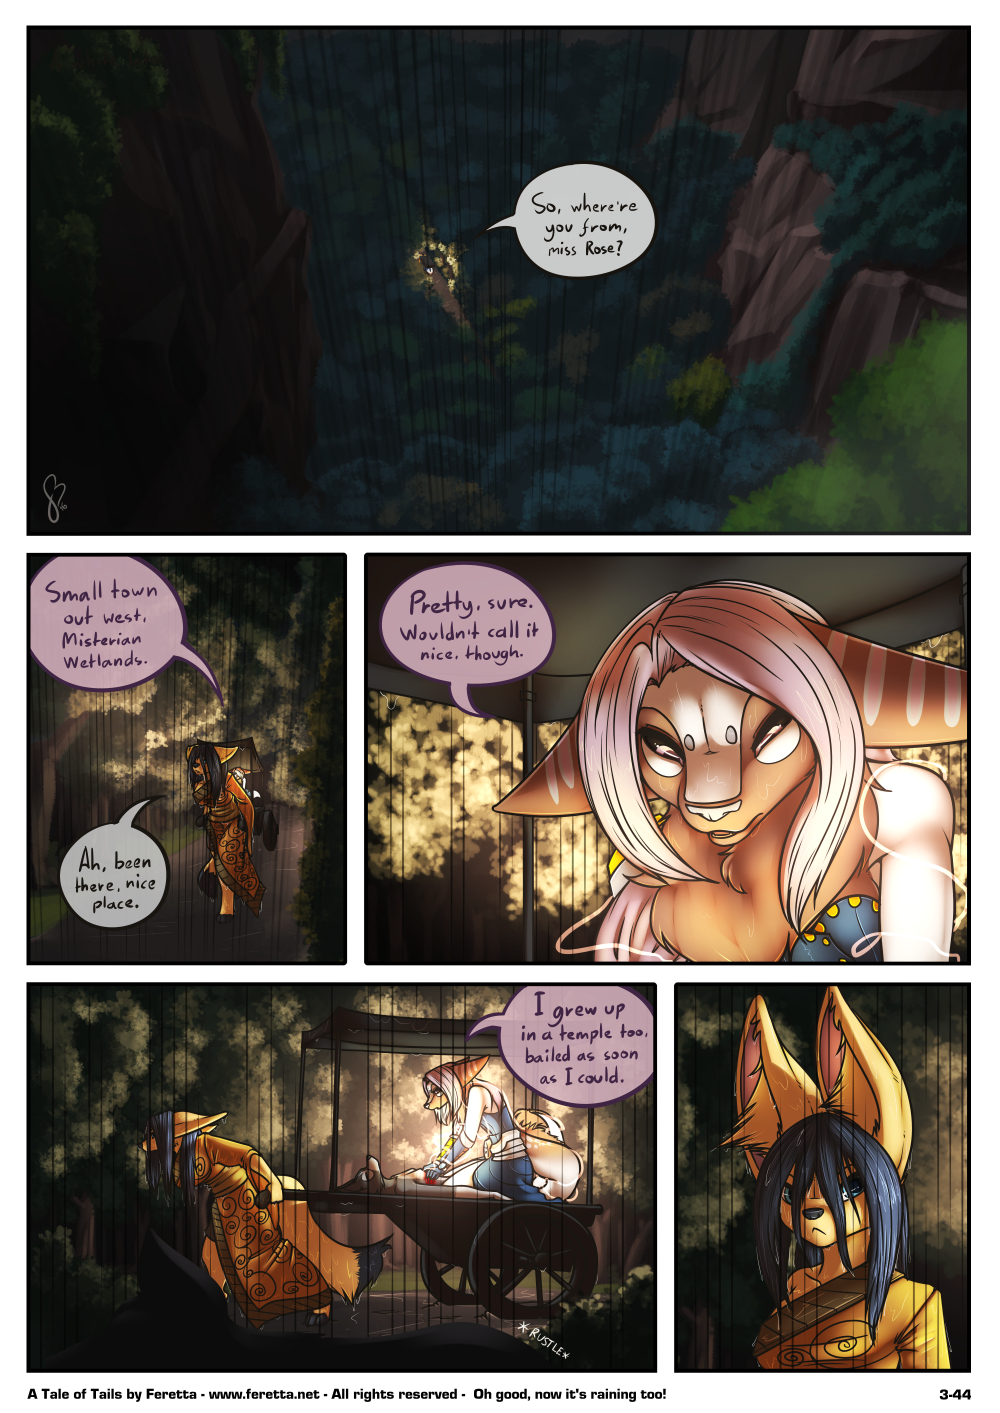 A Tale of Tails, 3-44